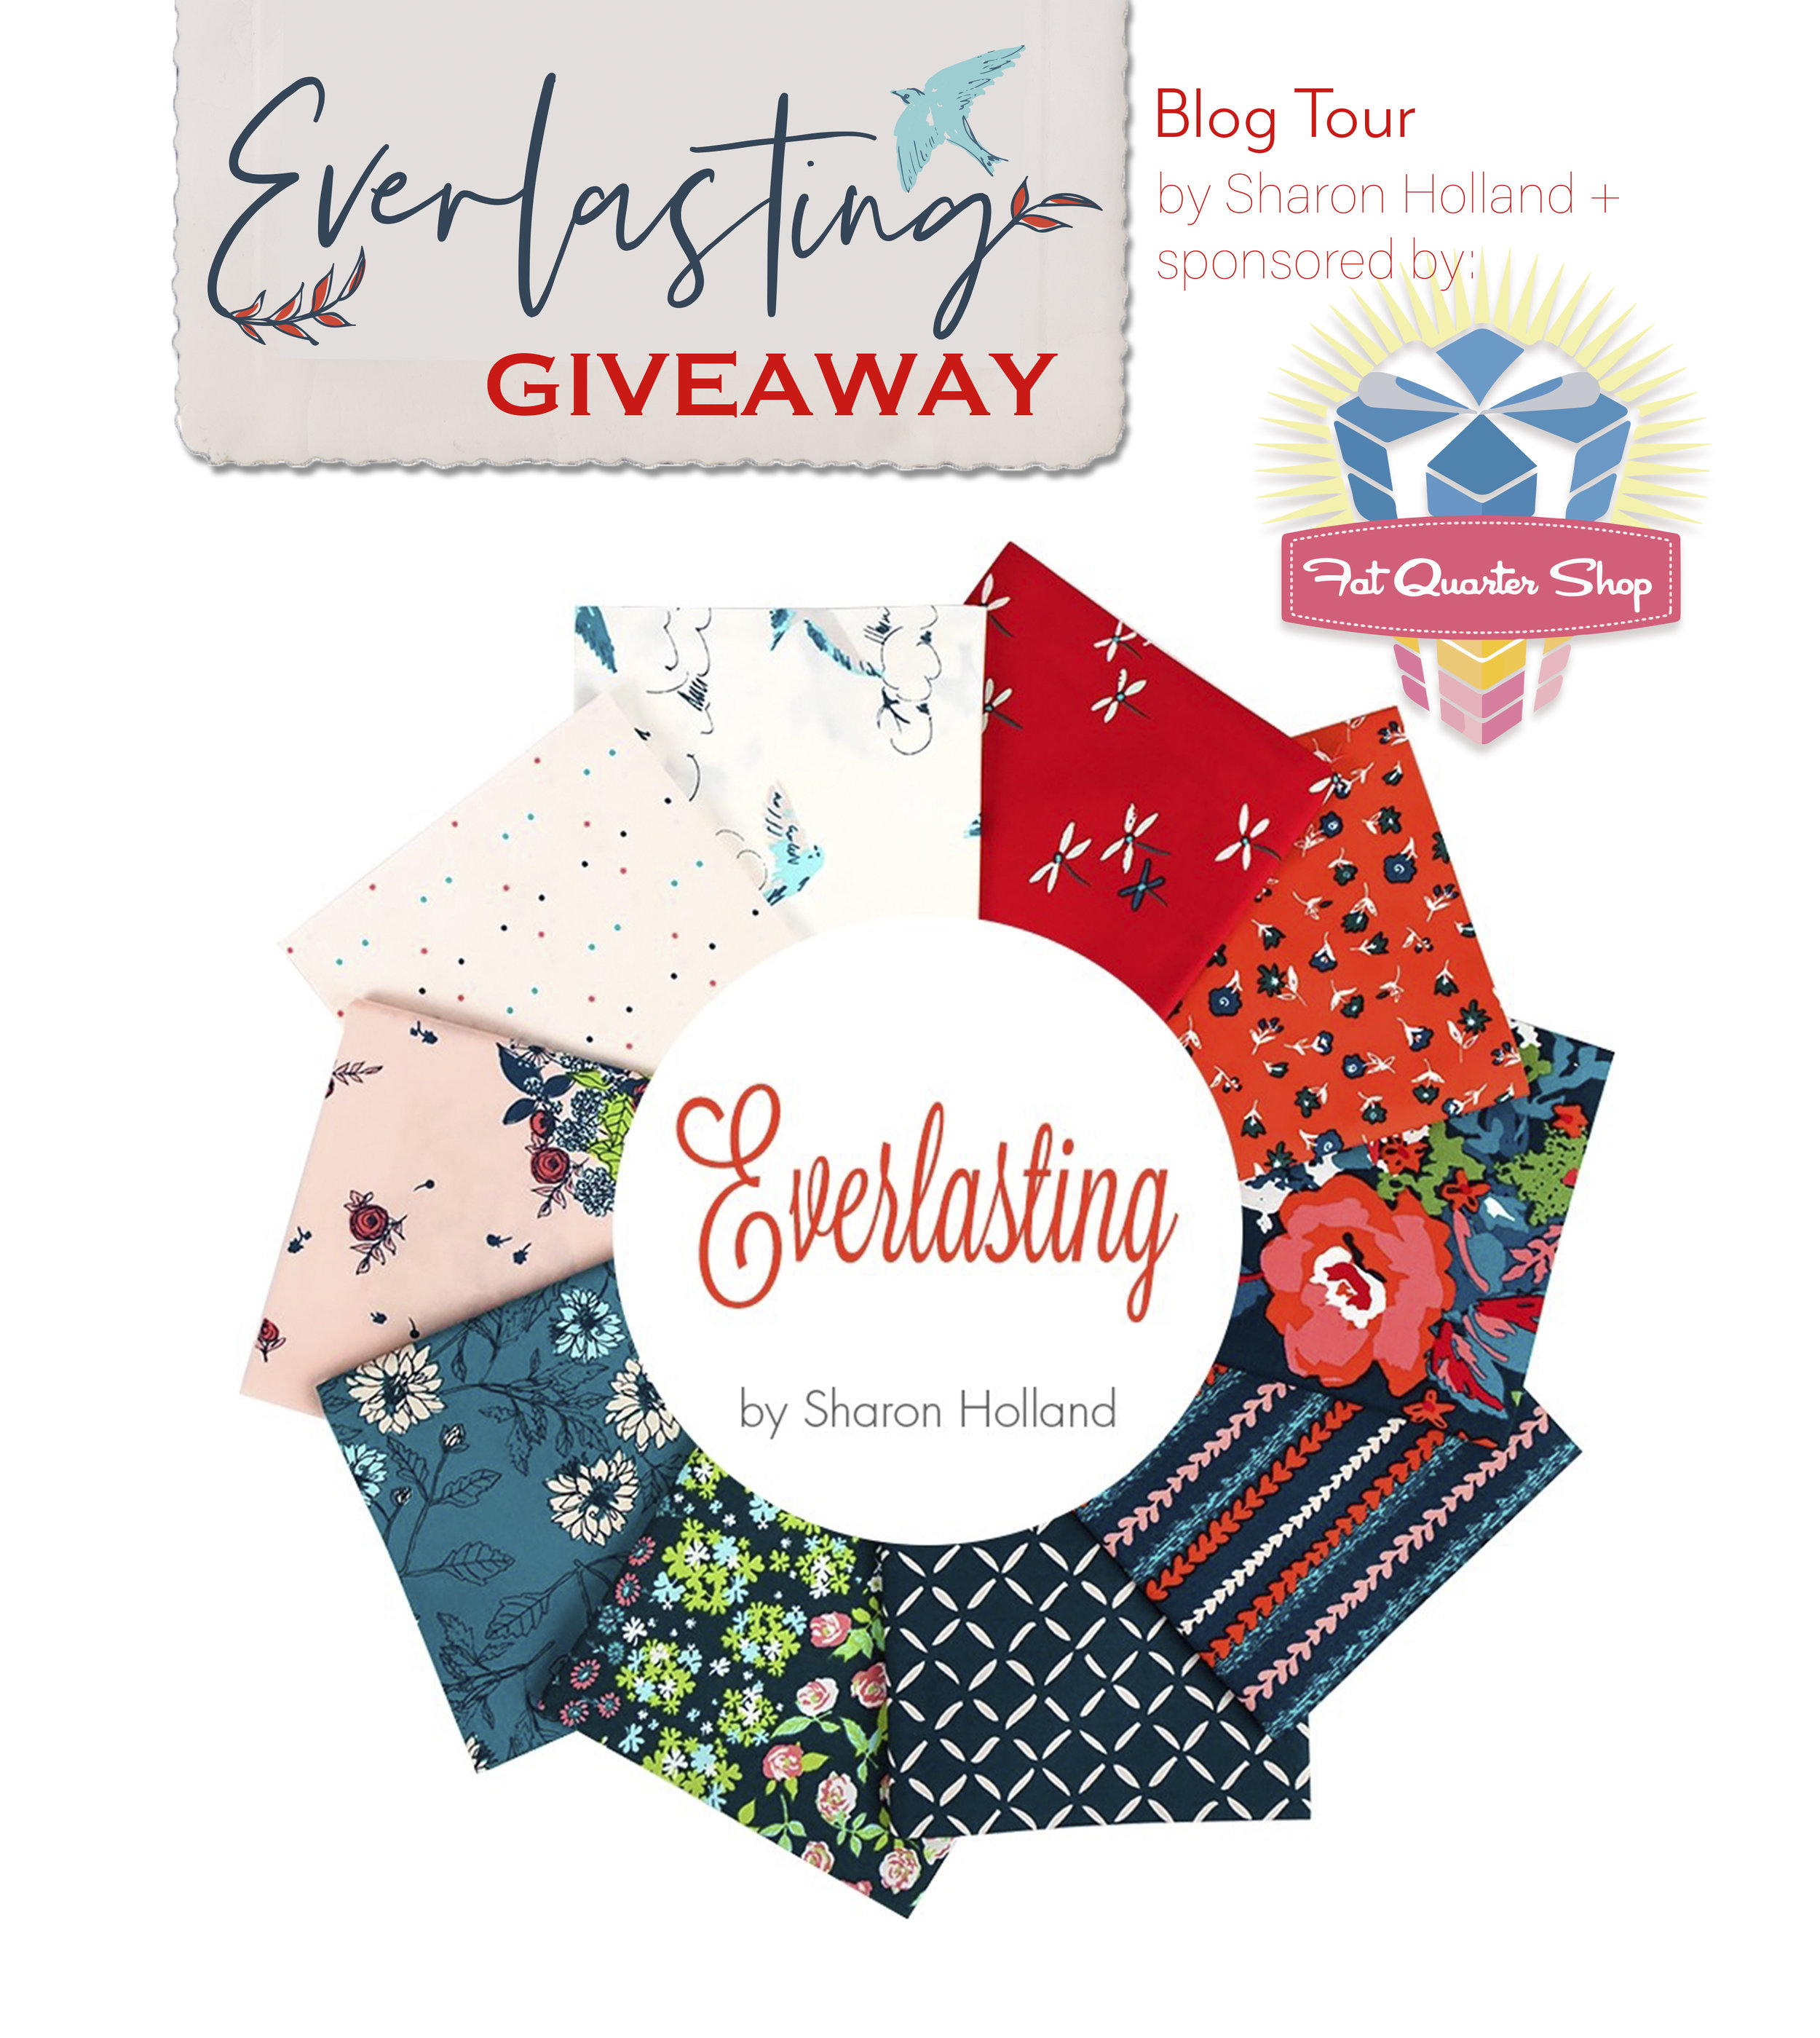 Fat Quarter Shop Giveaway Graphic.jpg